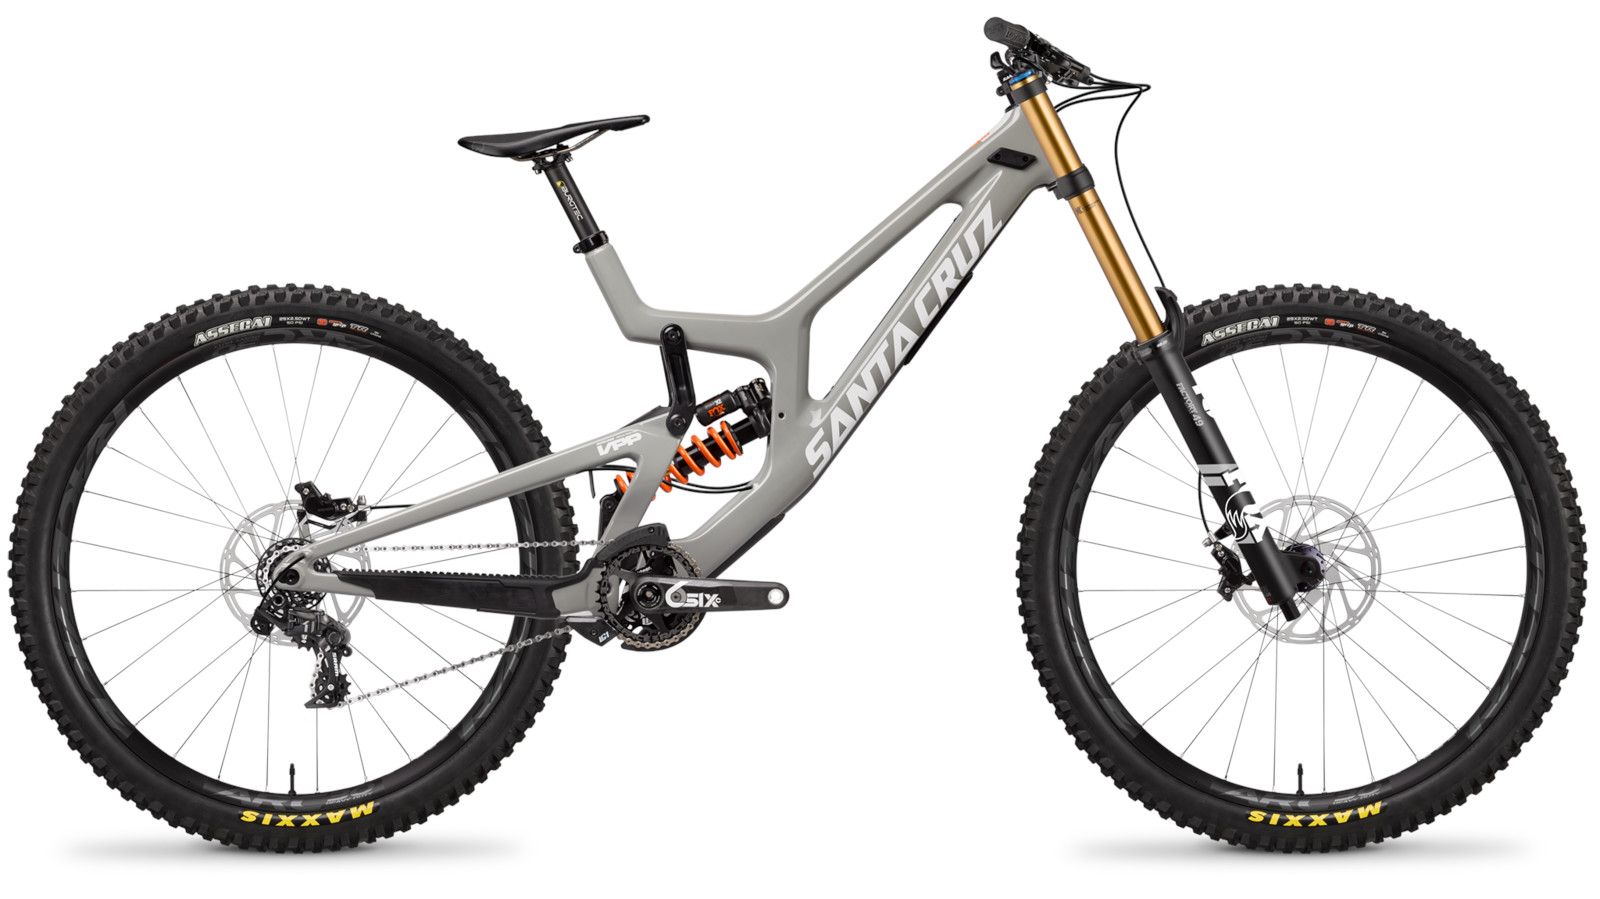 Santa Cruz Releases New V10 DH Bike in 29 and 27.5 Along with Carbon Reserve 29 DH Wheels